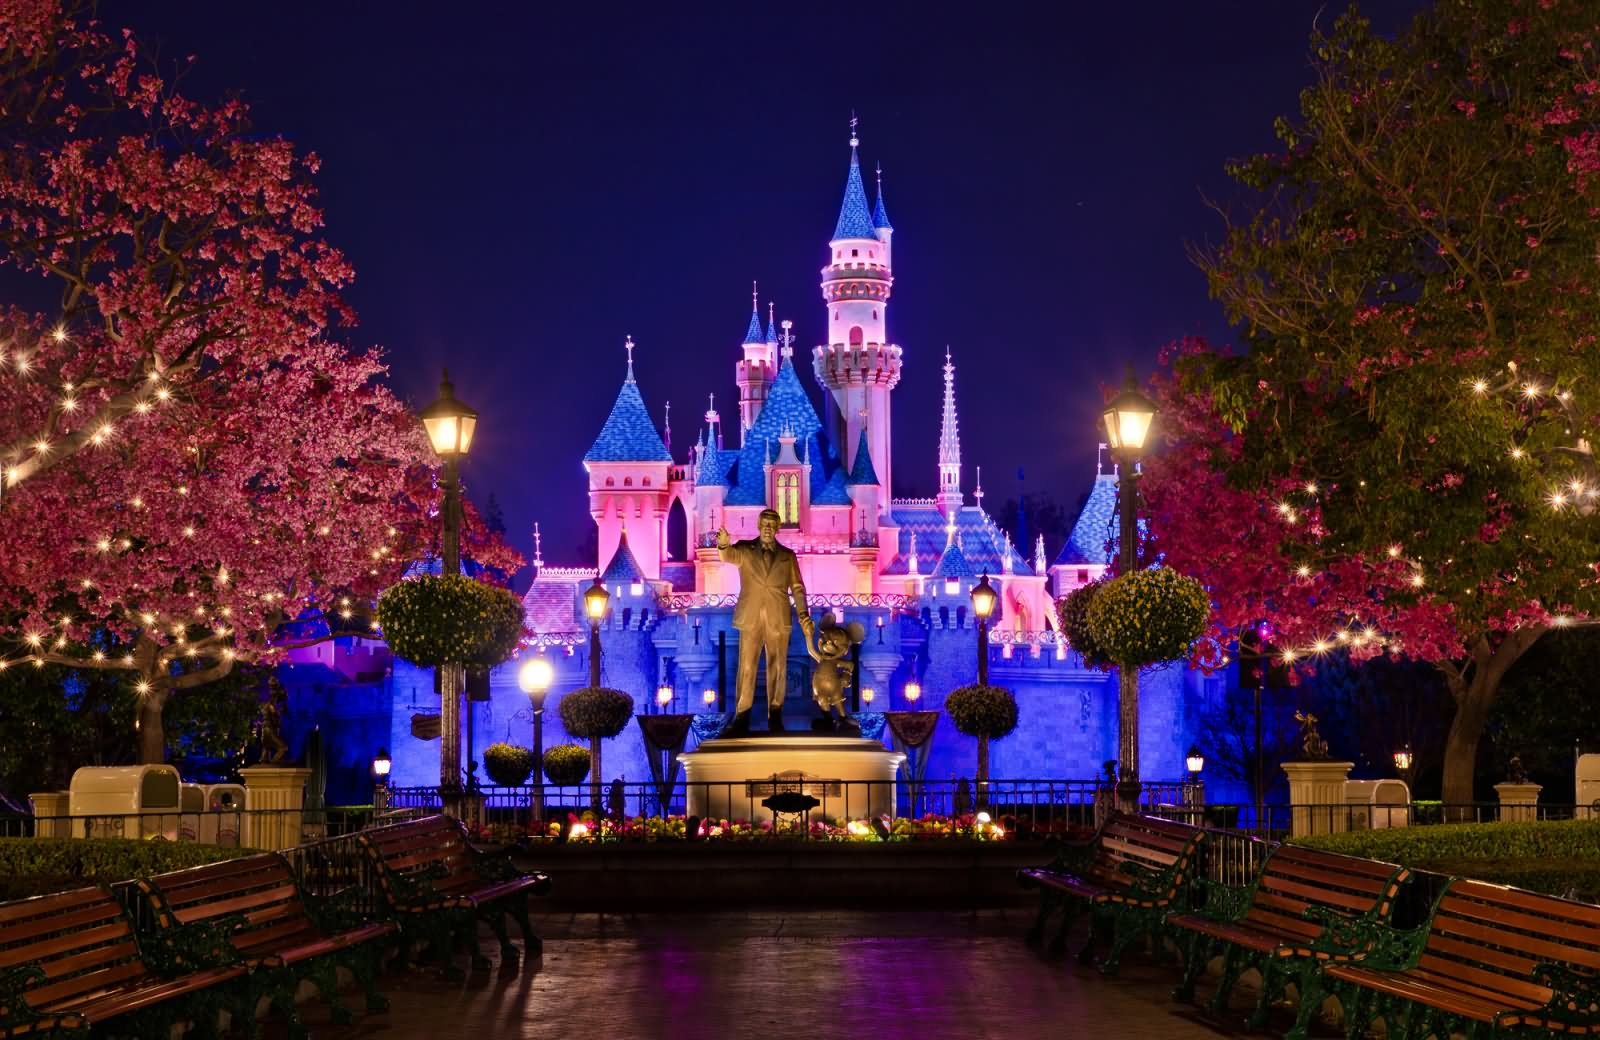 20 Incredible Disneyland Paris Night Pictures And Images